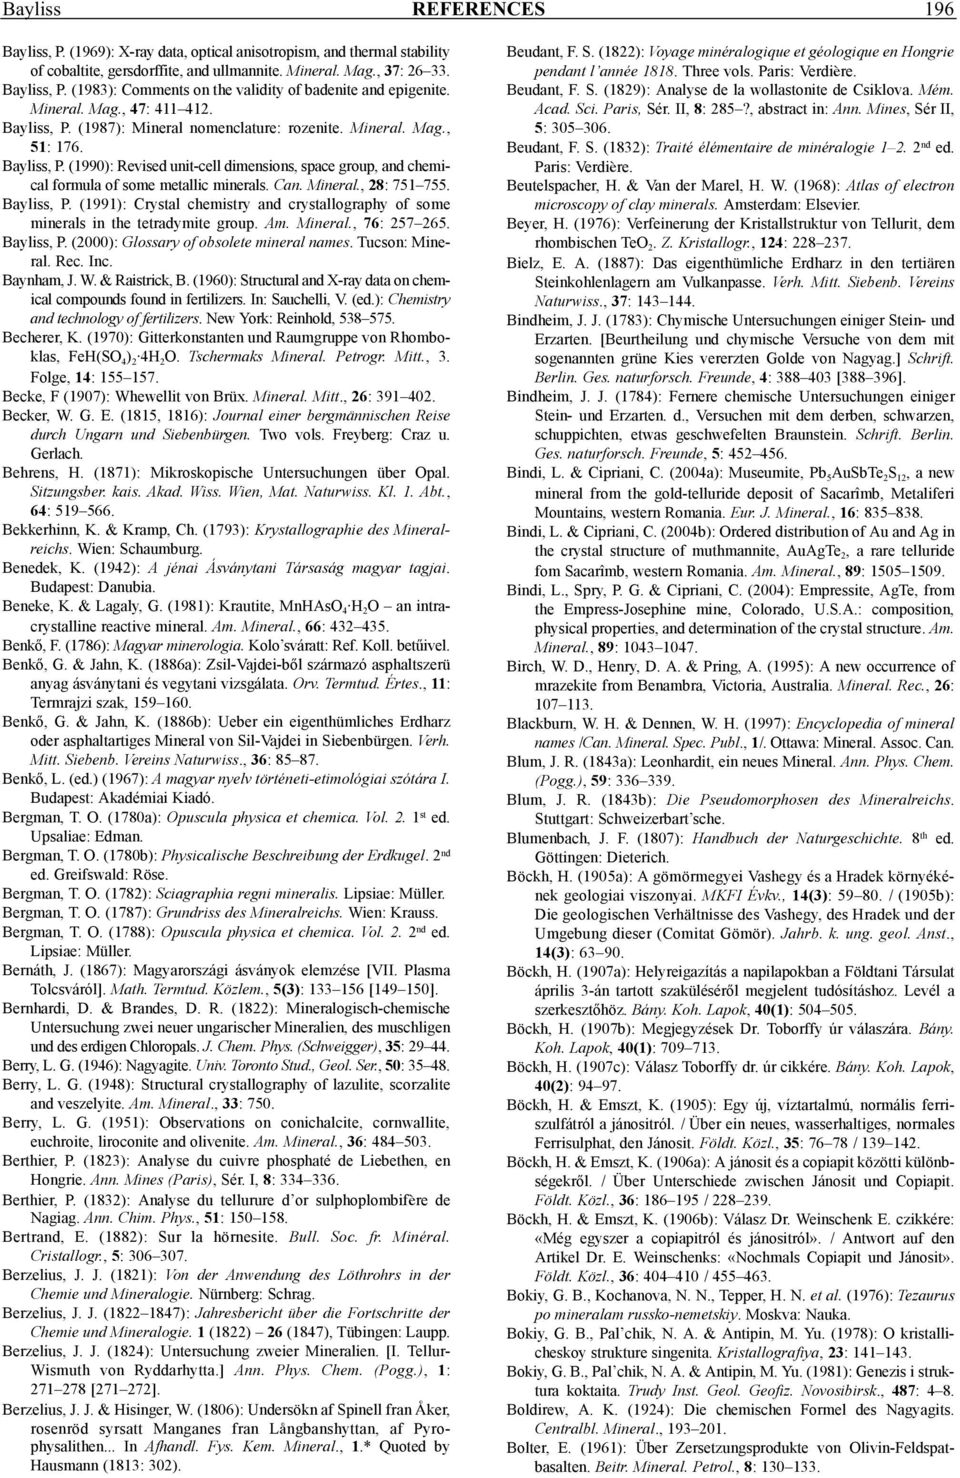 Can. Mineral., 28: 751 755. Bayliss, P. (1991): Crystal chemistry and crystallography of some minerals in the tetradymite group. Am. Mineral., 76: 257 265. Bayliss, P. (2000): Glossary of obsolete mineral names.